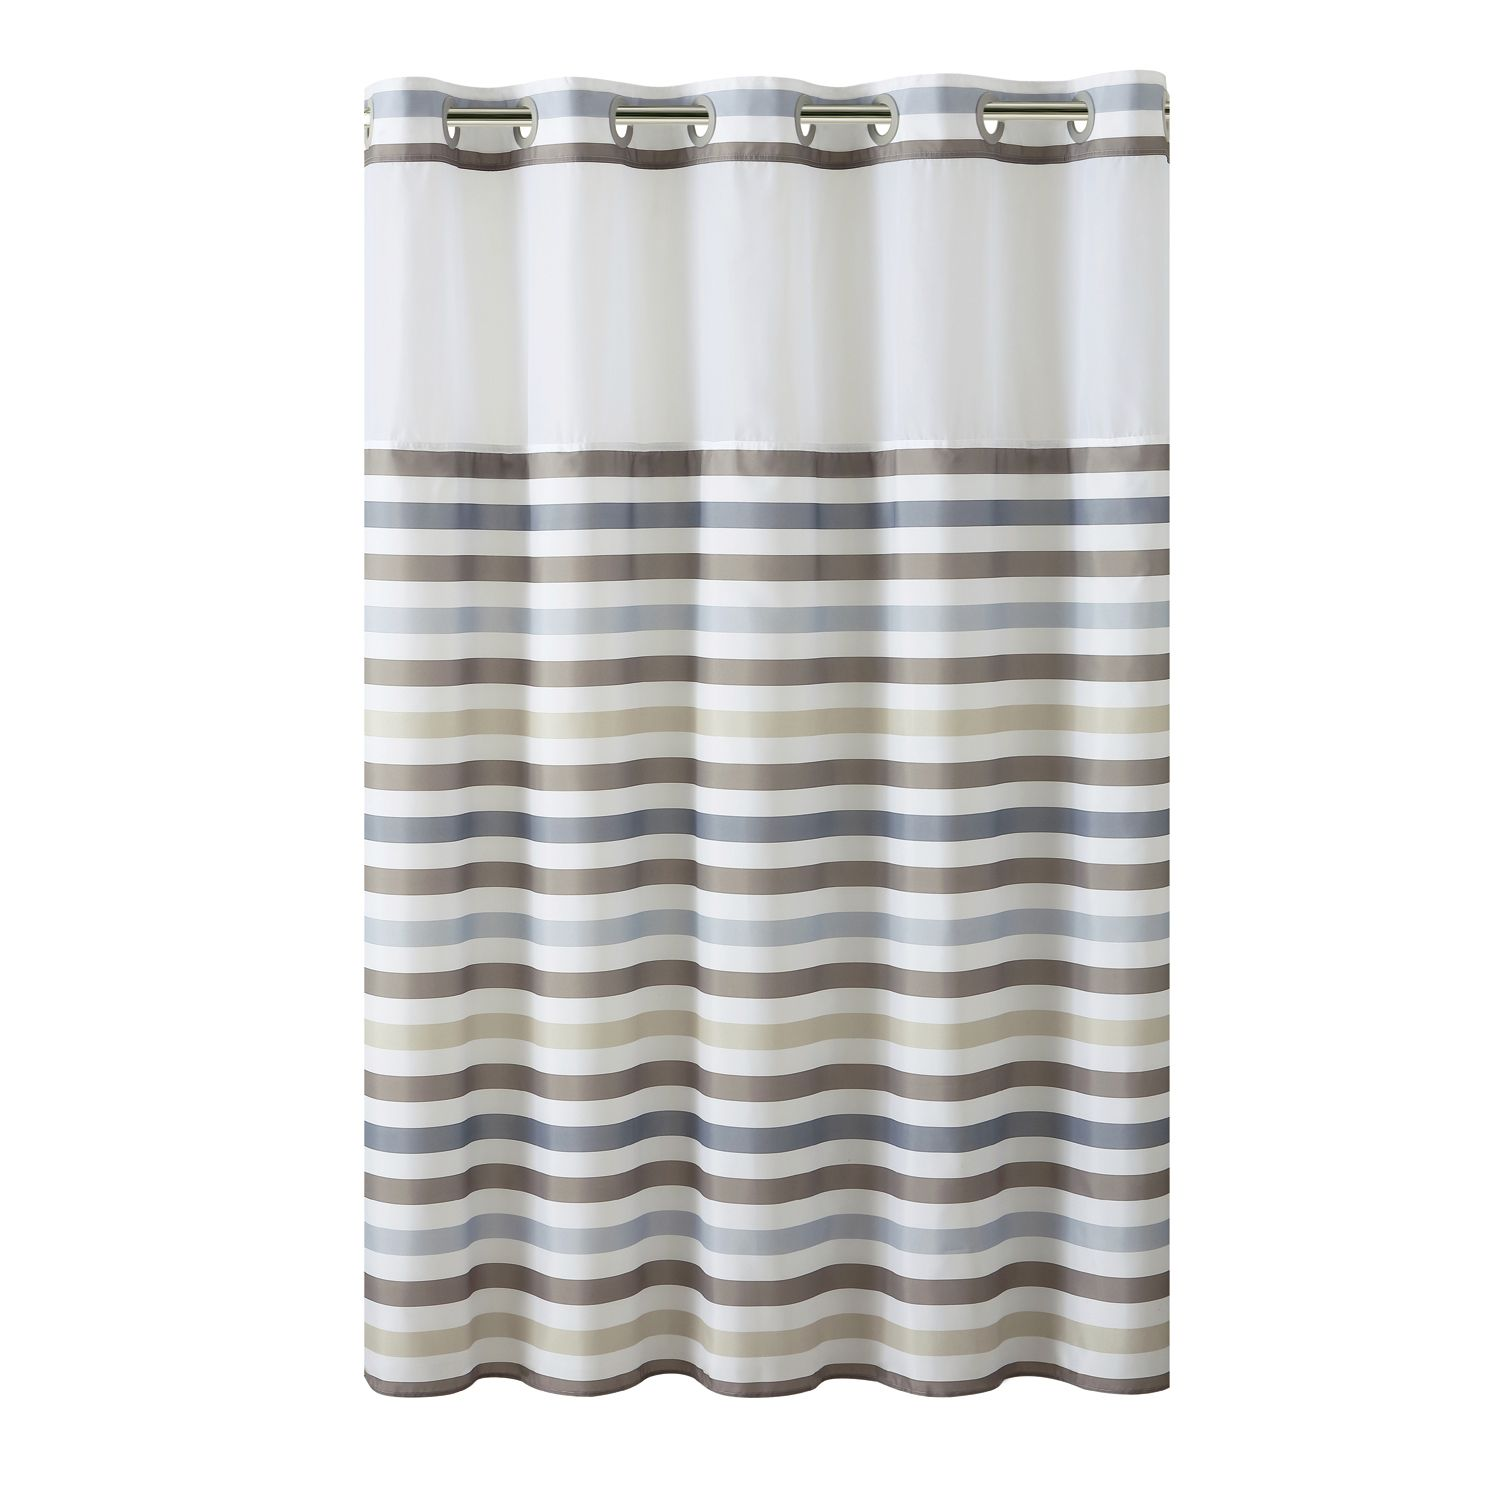 Hookless Shower Curtains Accessories